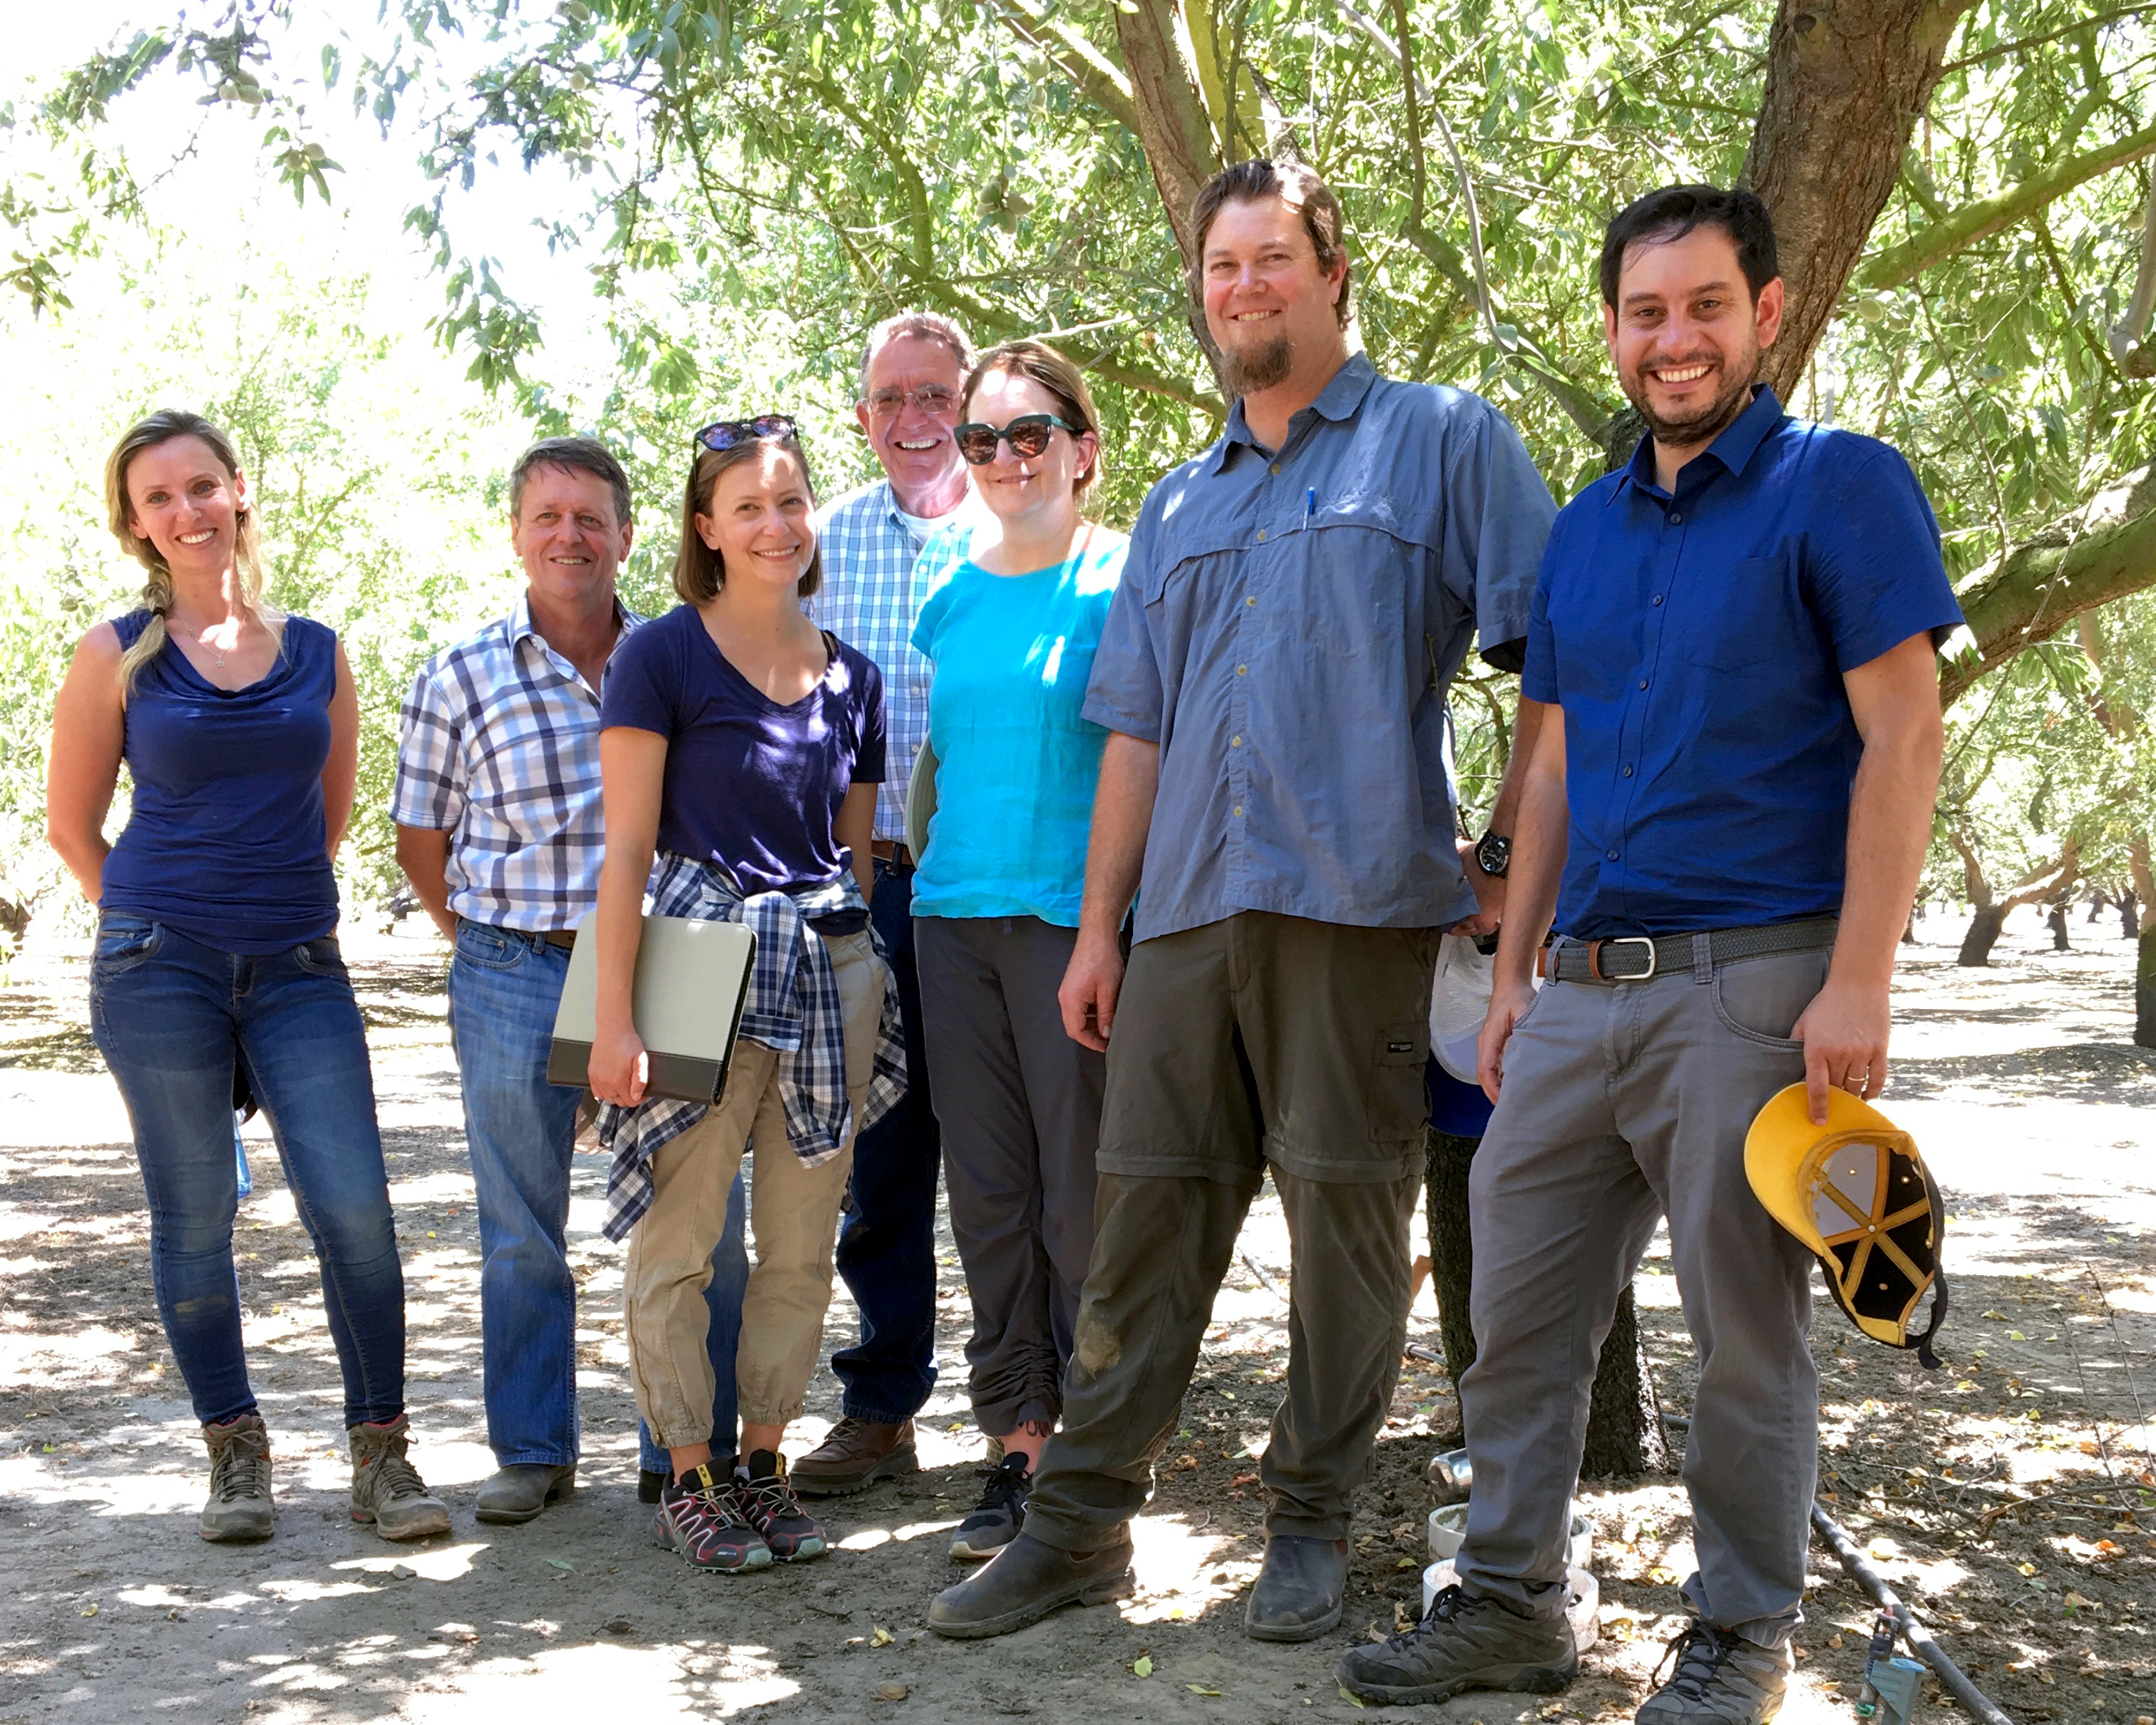 Collaborators gather to study nitrogen efficiency in a Modesto almond orchard, including, from left, postdoctoral researcher Hanna Ouaknin; Professor Patrick Brown; Ph.D. student Jessica Rudnick; grower Art Bowman; Professor Gail Taylor; Ph.D. student Patrick Nichols; and Sebastian Saa Silver, UC Davis alum and agricultural researcher with the California Almond Board.